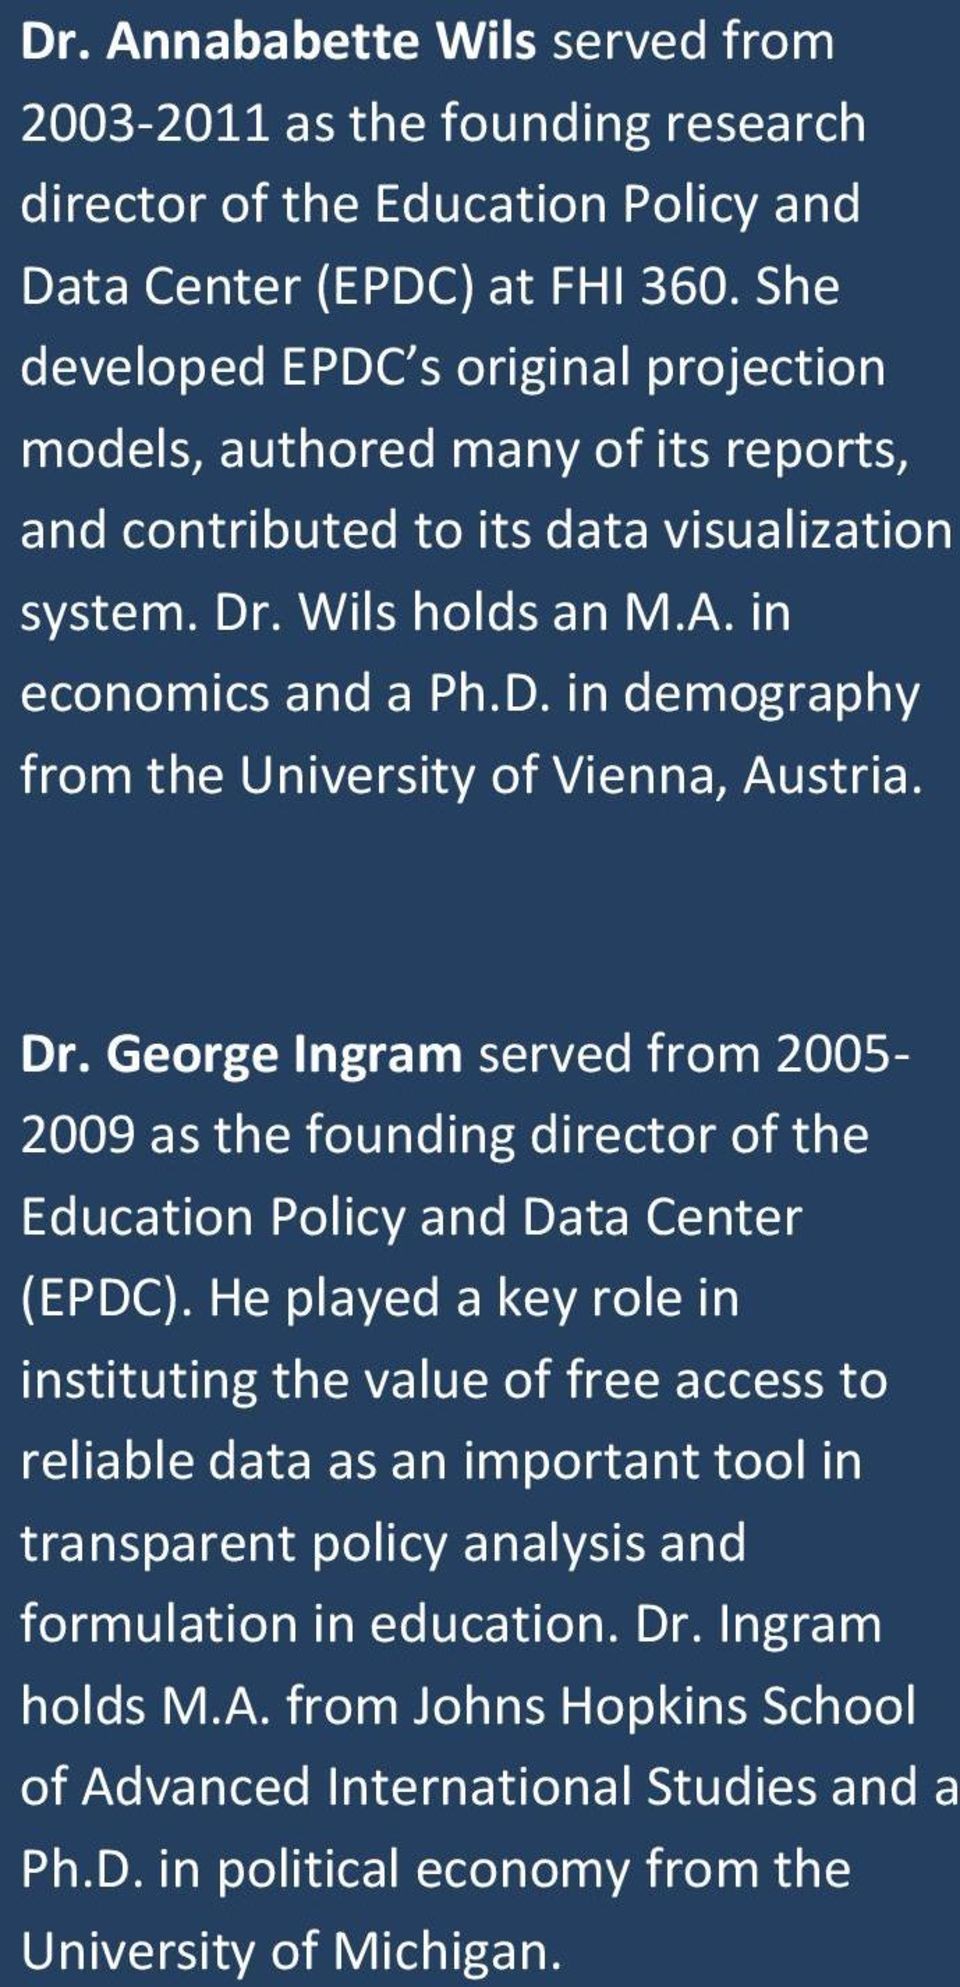 Dr. George Ingram served from 25-29 as the founding director of the Education Policy and Data Center (EPDC).